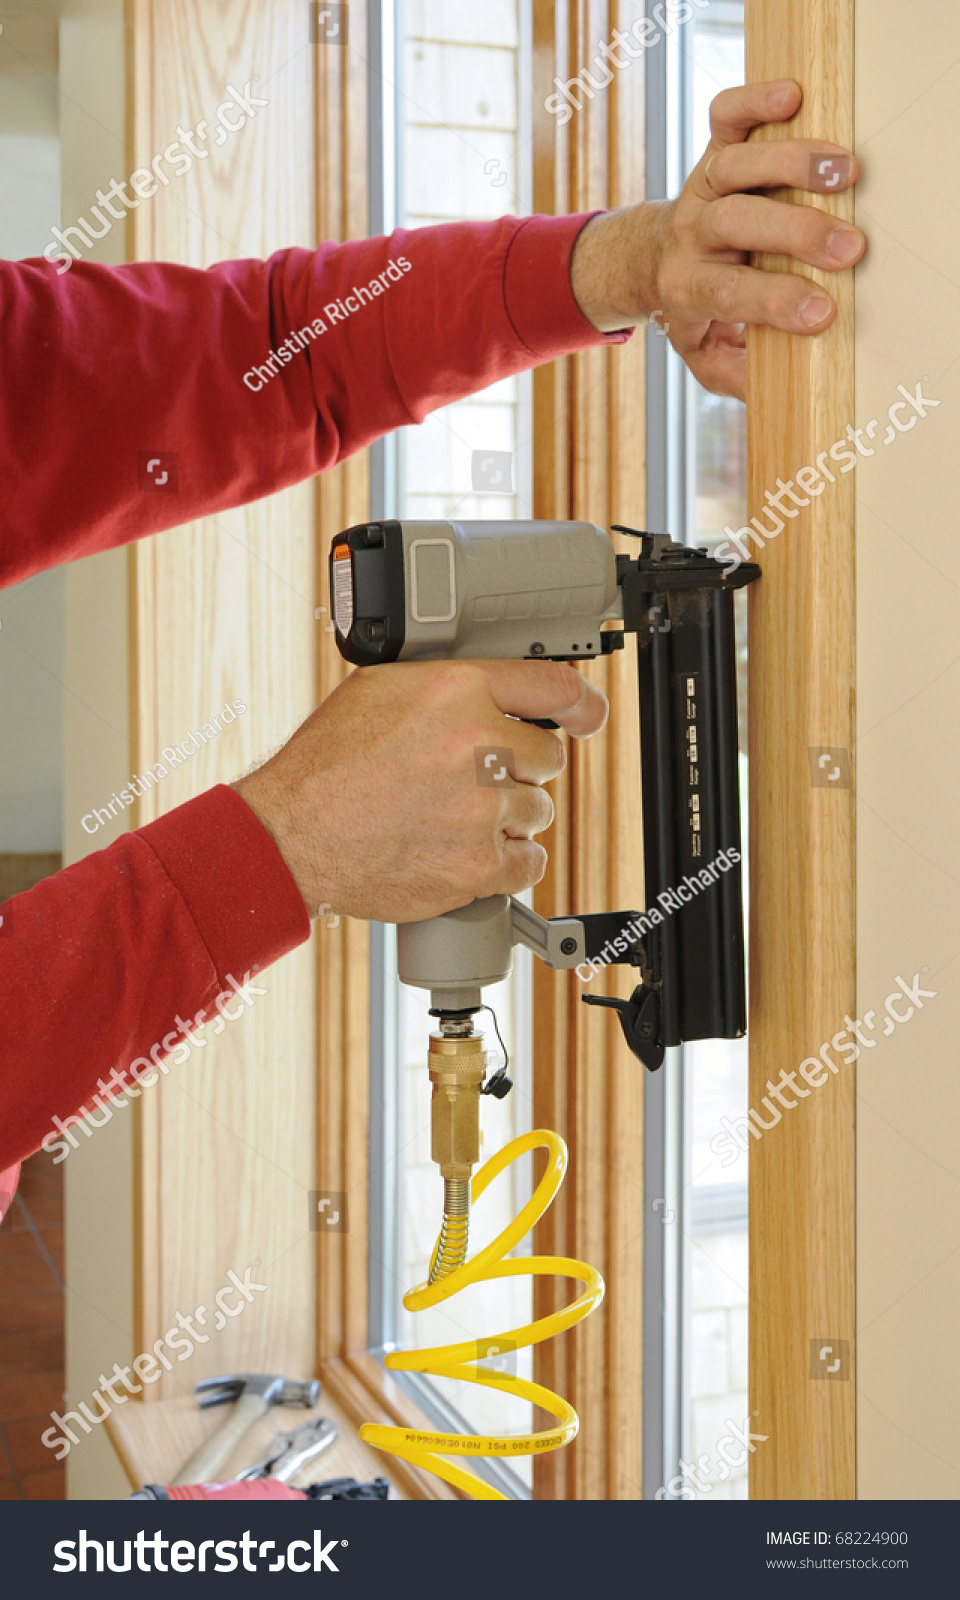 Nail Gun Being Used To Install Wood Trim Around Windows With Finishing Nails Stock Photo 68224900 : Shutterstock